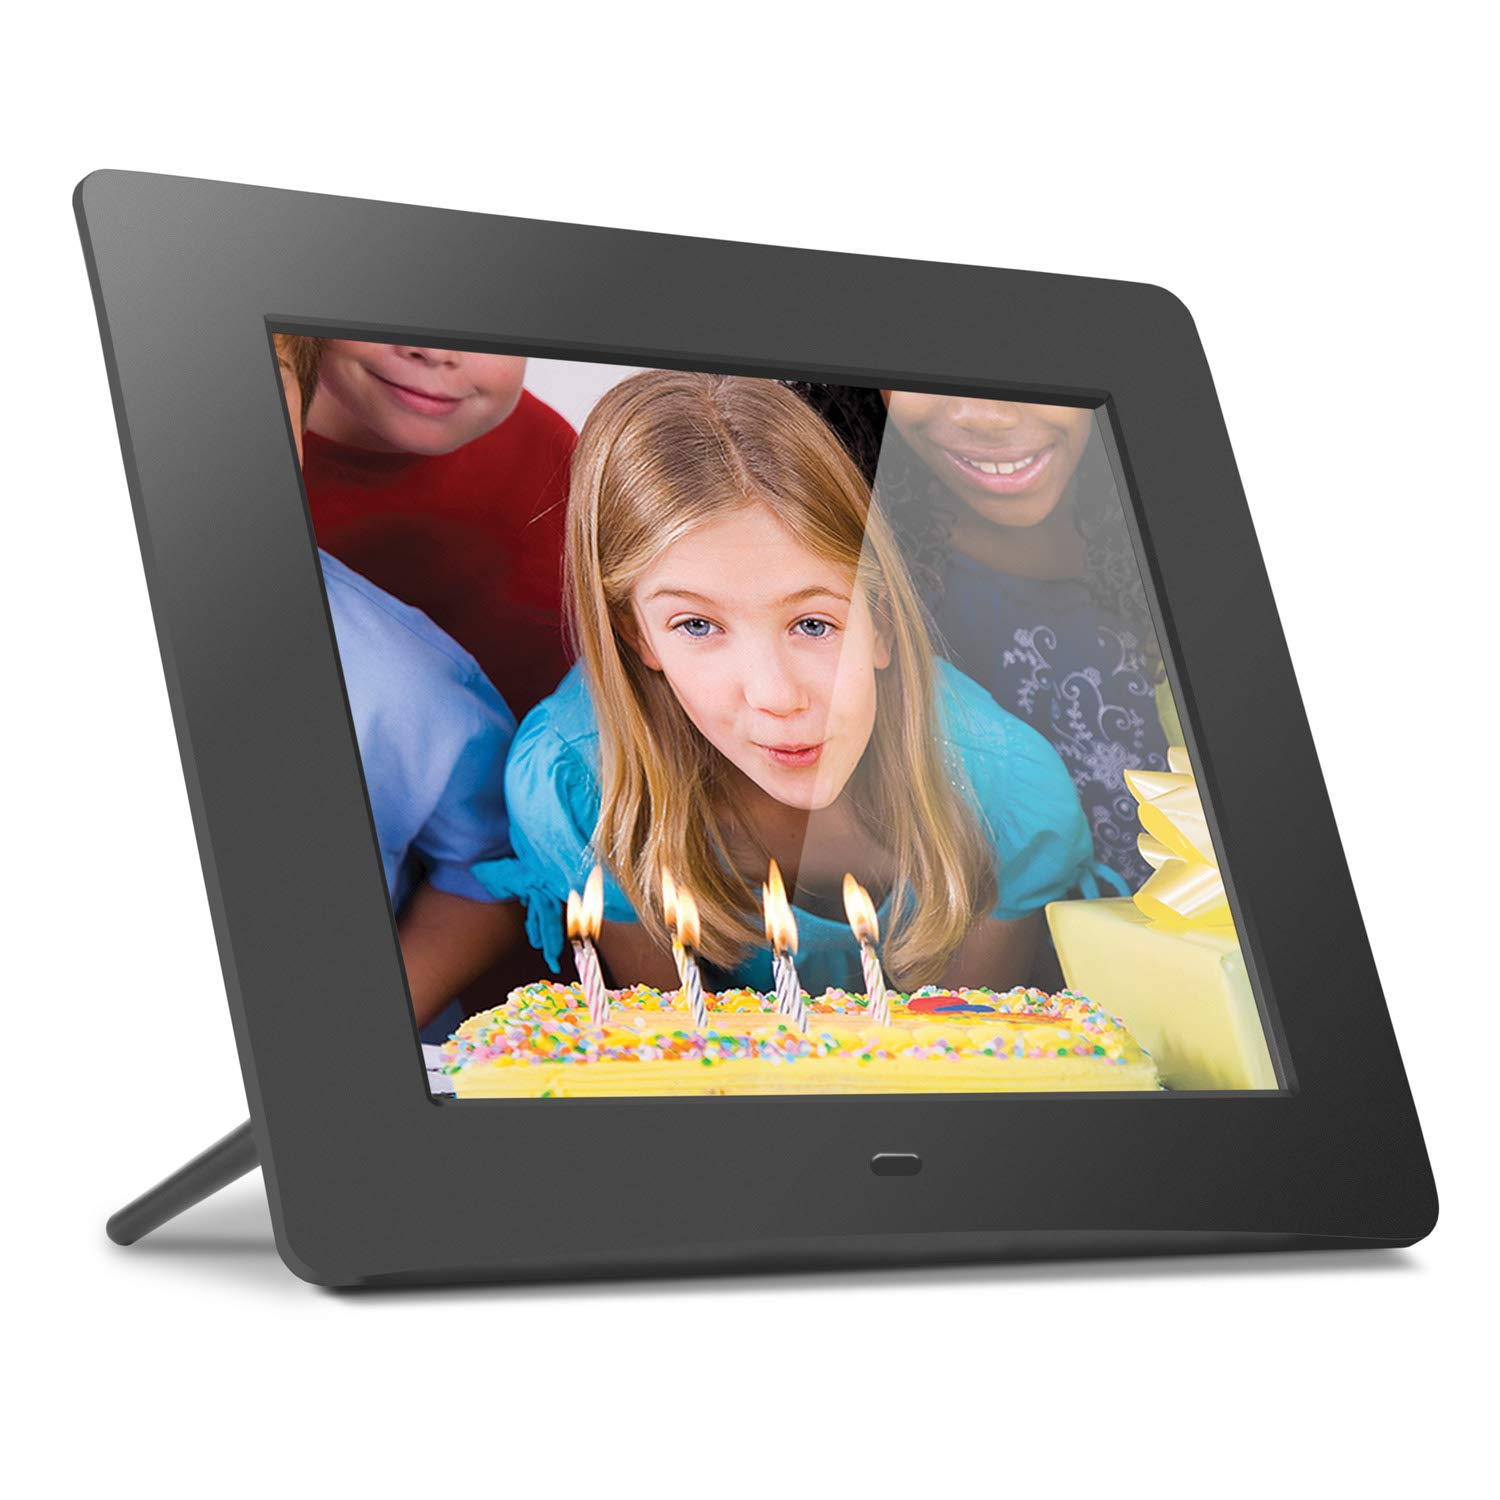 Aluratek (ADMPF108F) 8'' Hi-Res Digital Photo Frame with 4GB Built-In Memory (800 x 600 Resolution), Photo/Music/Video Support by Aluratek